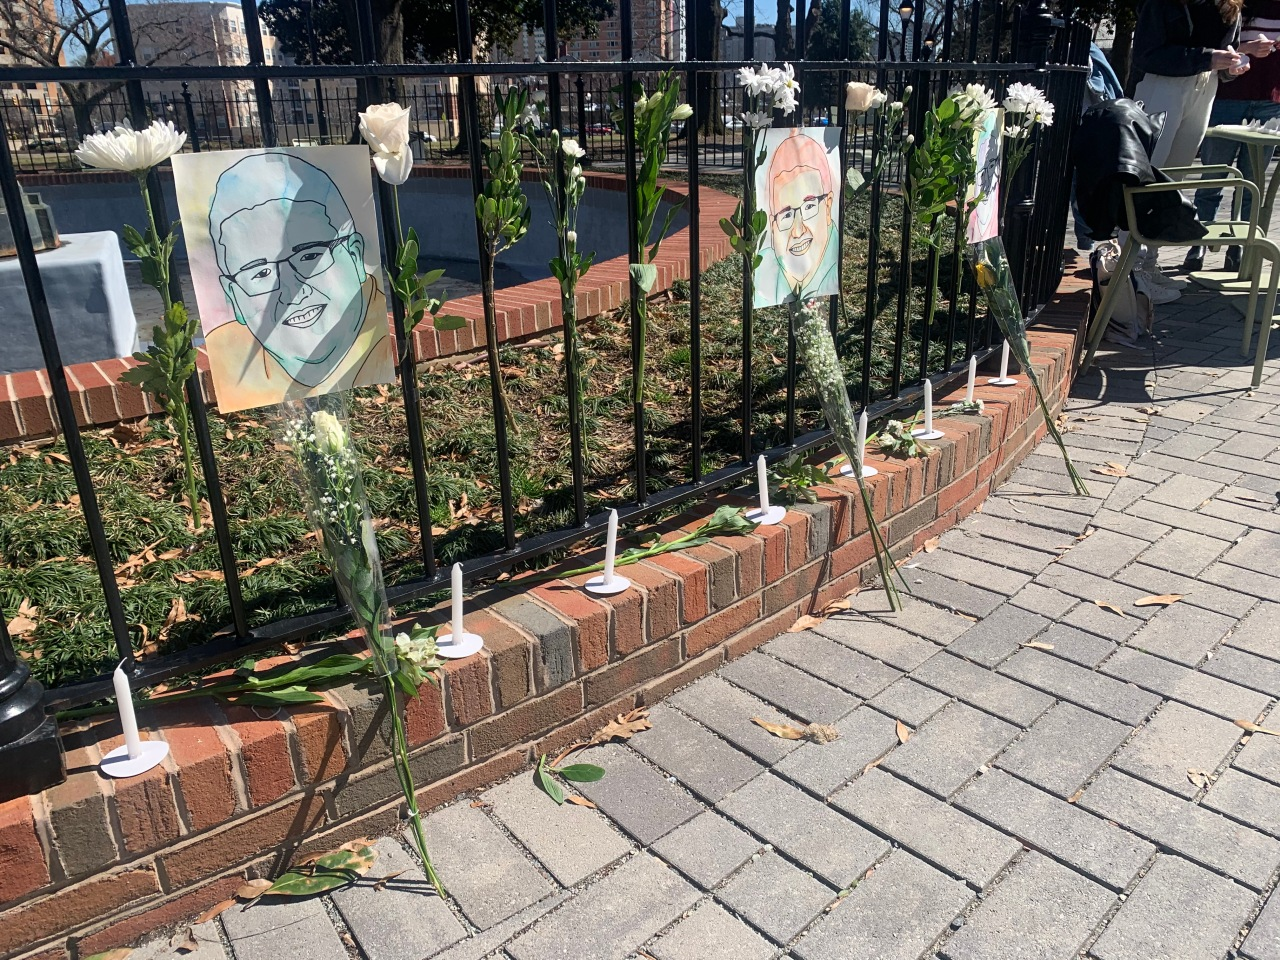 Memorial honors Adam Oakes, students push for change in university Greek culture: 'This cannot happen'